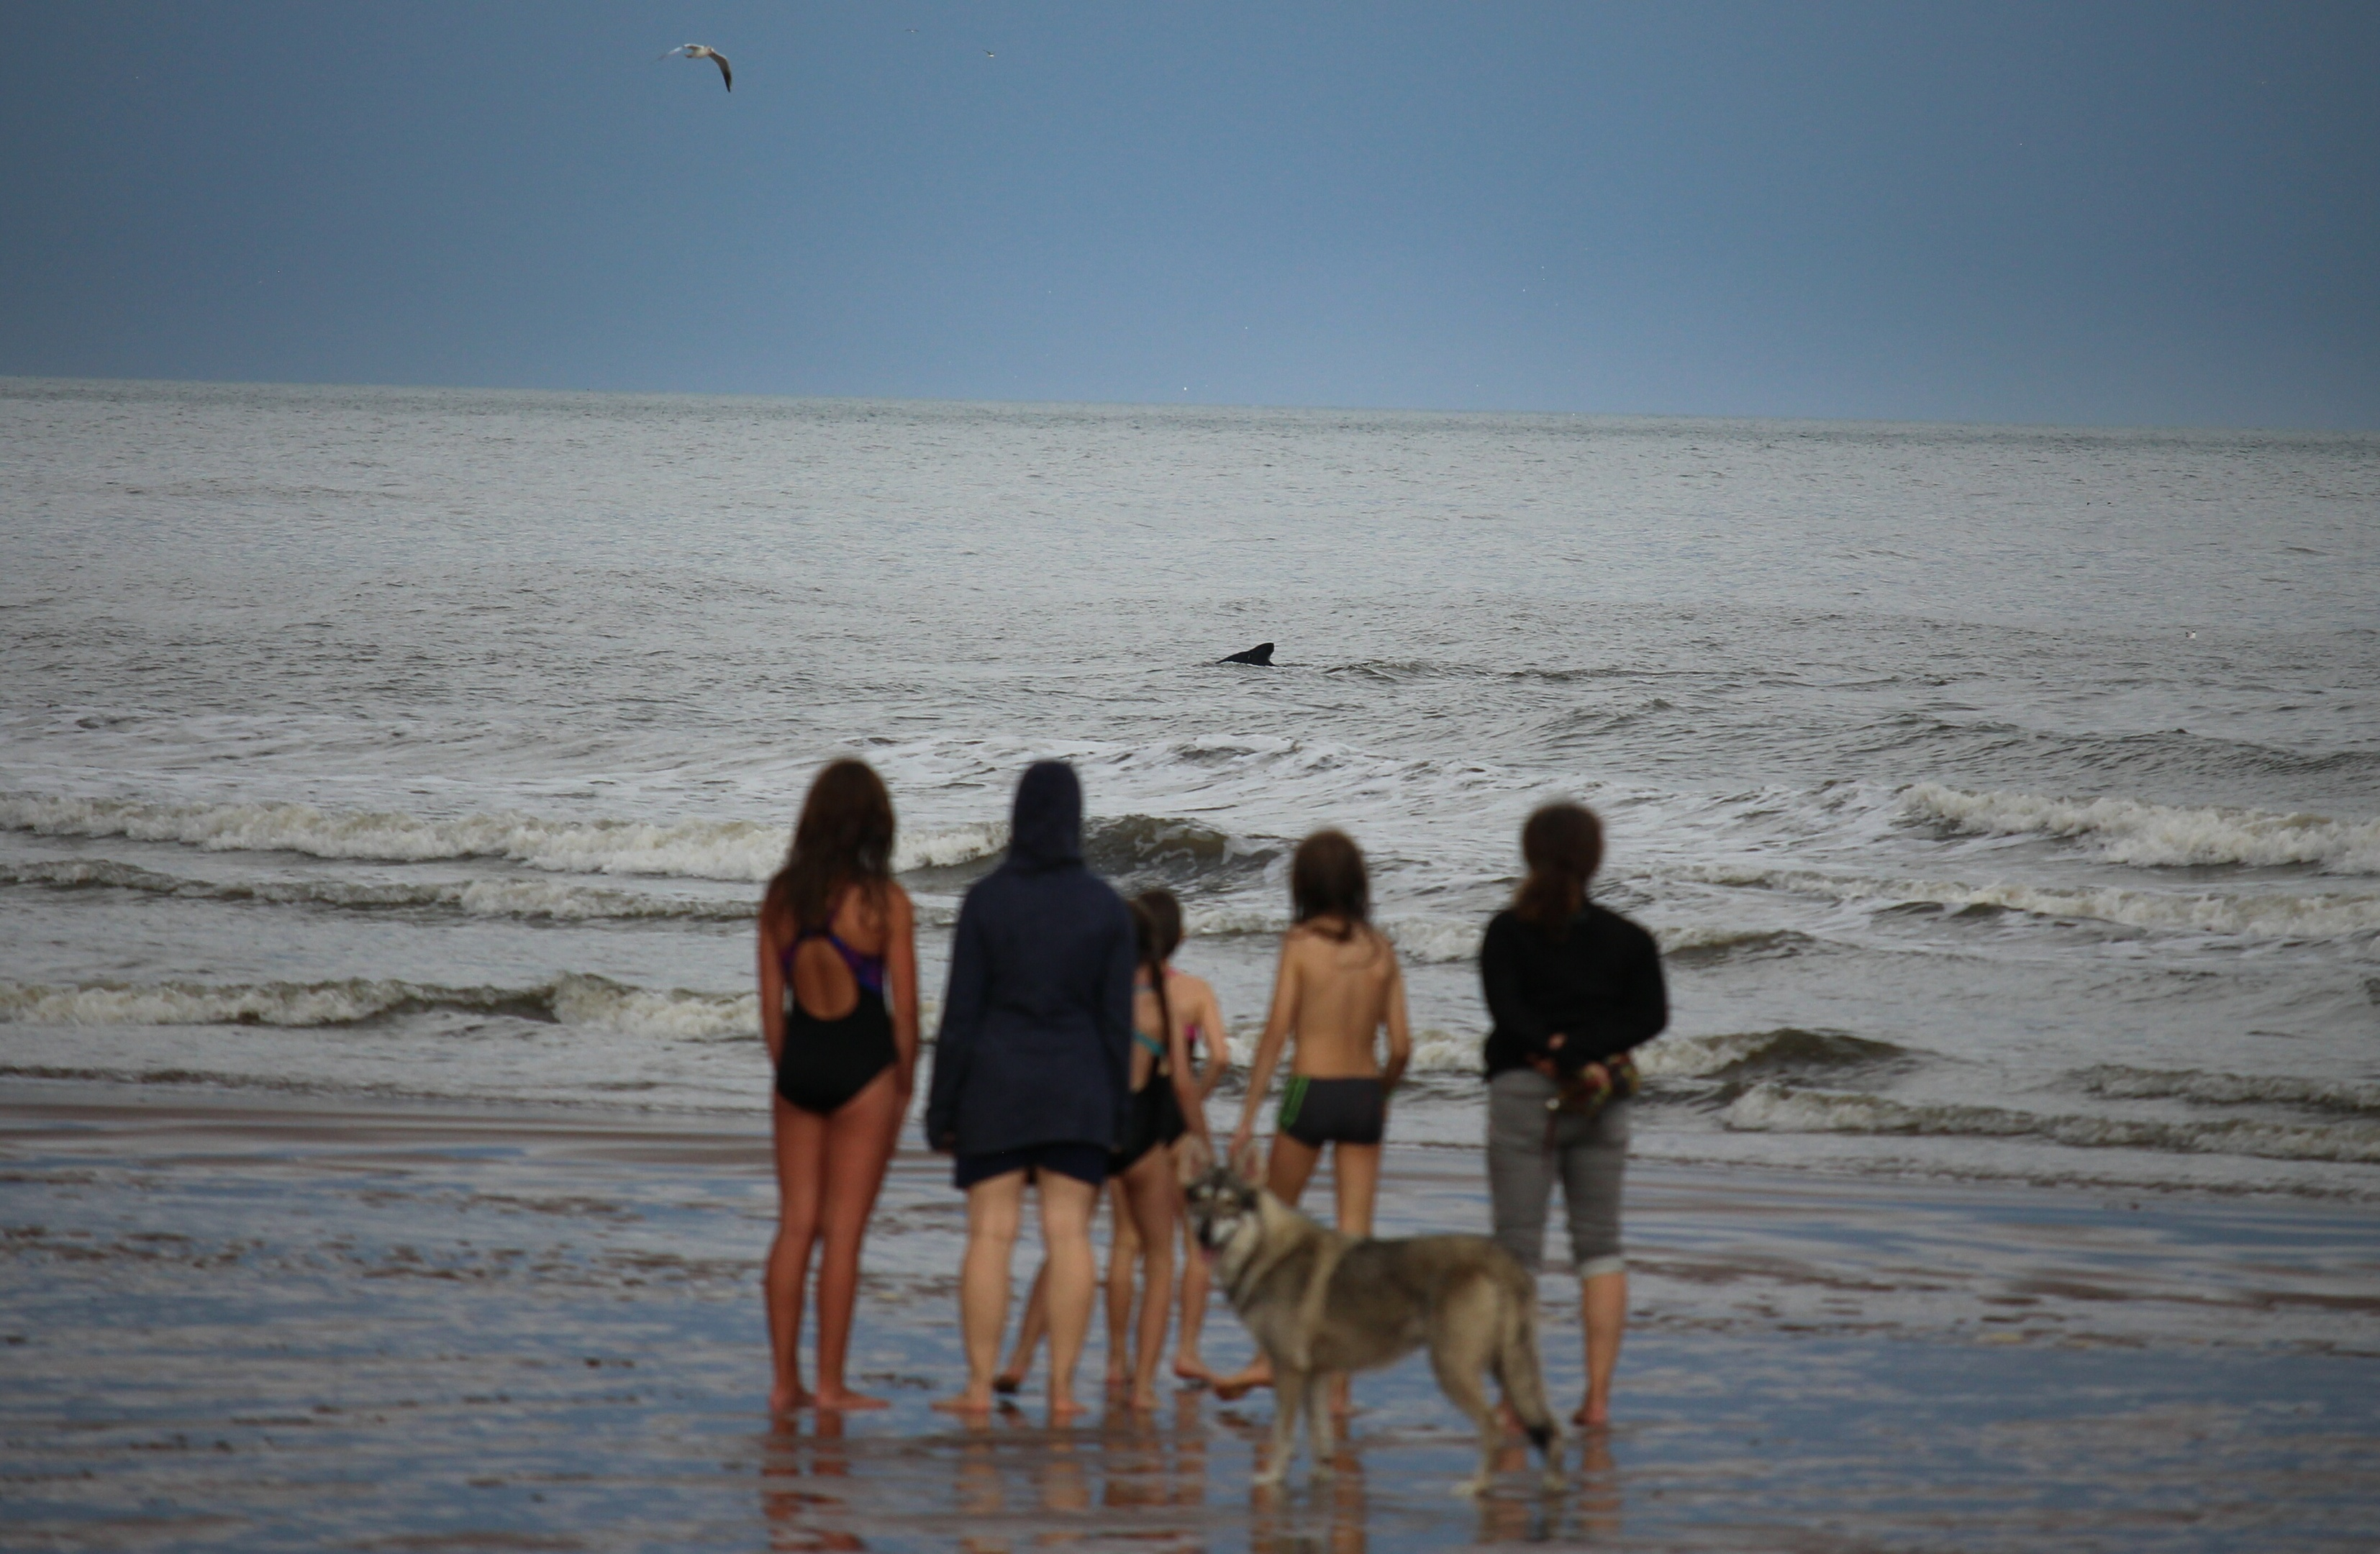 Some German tourists looking at the whale at St Cyrus.